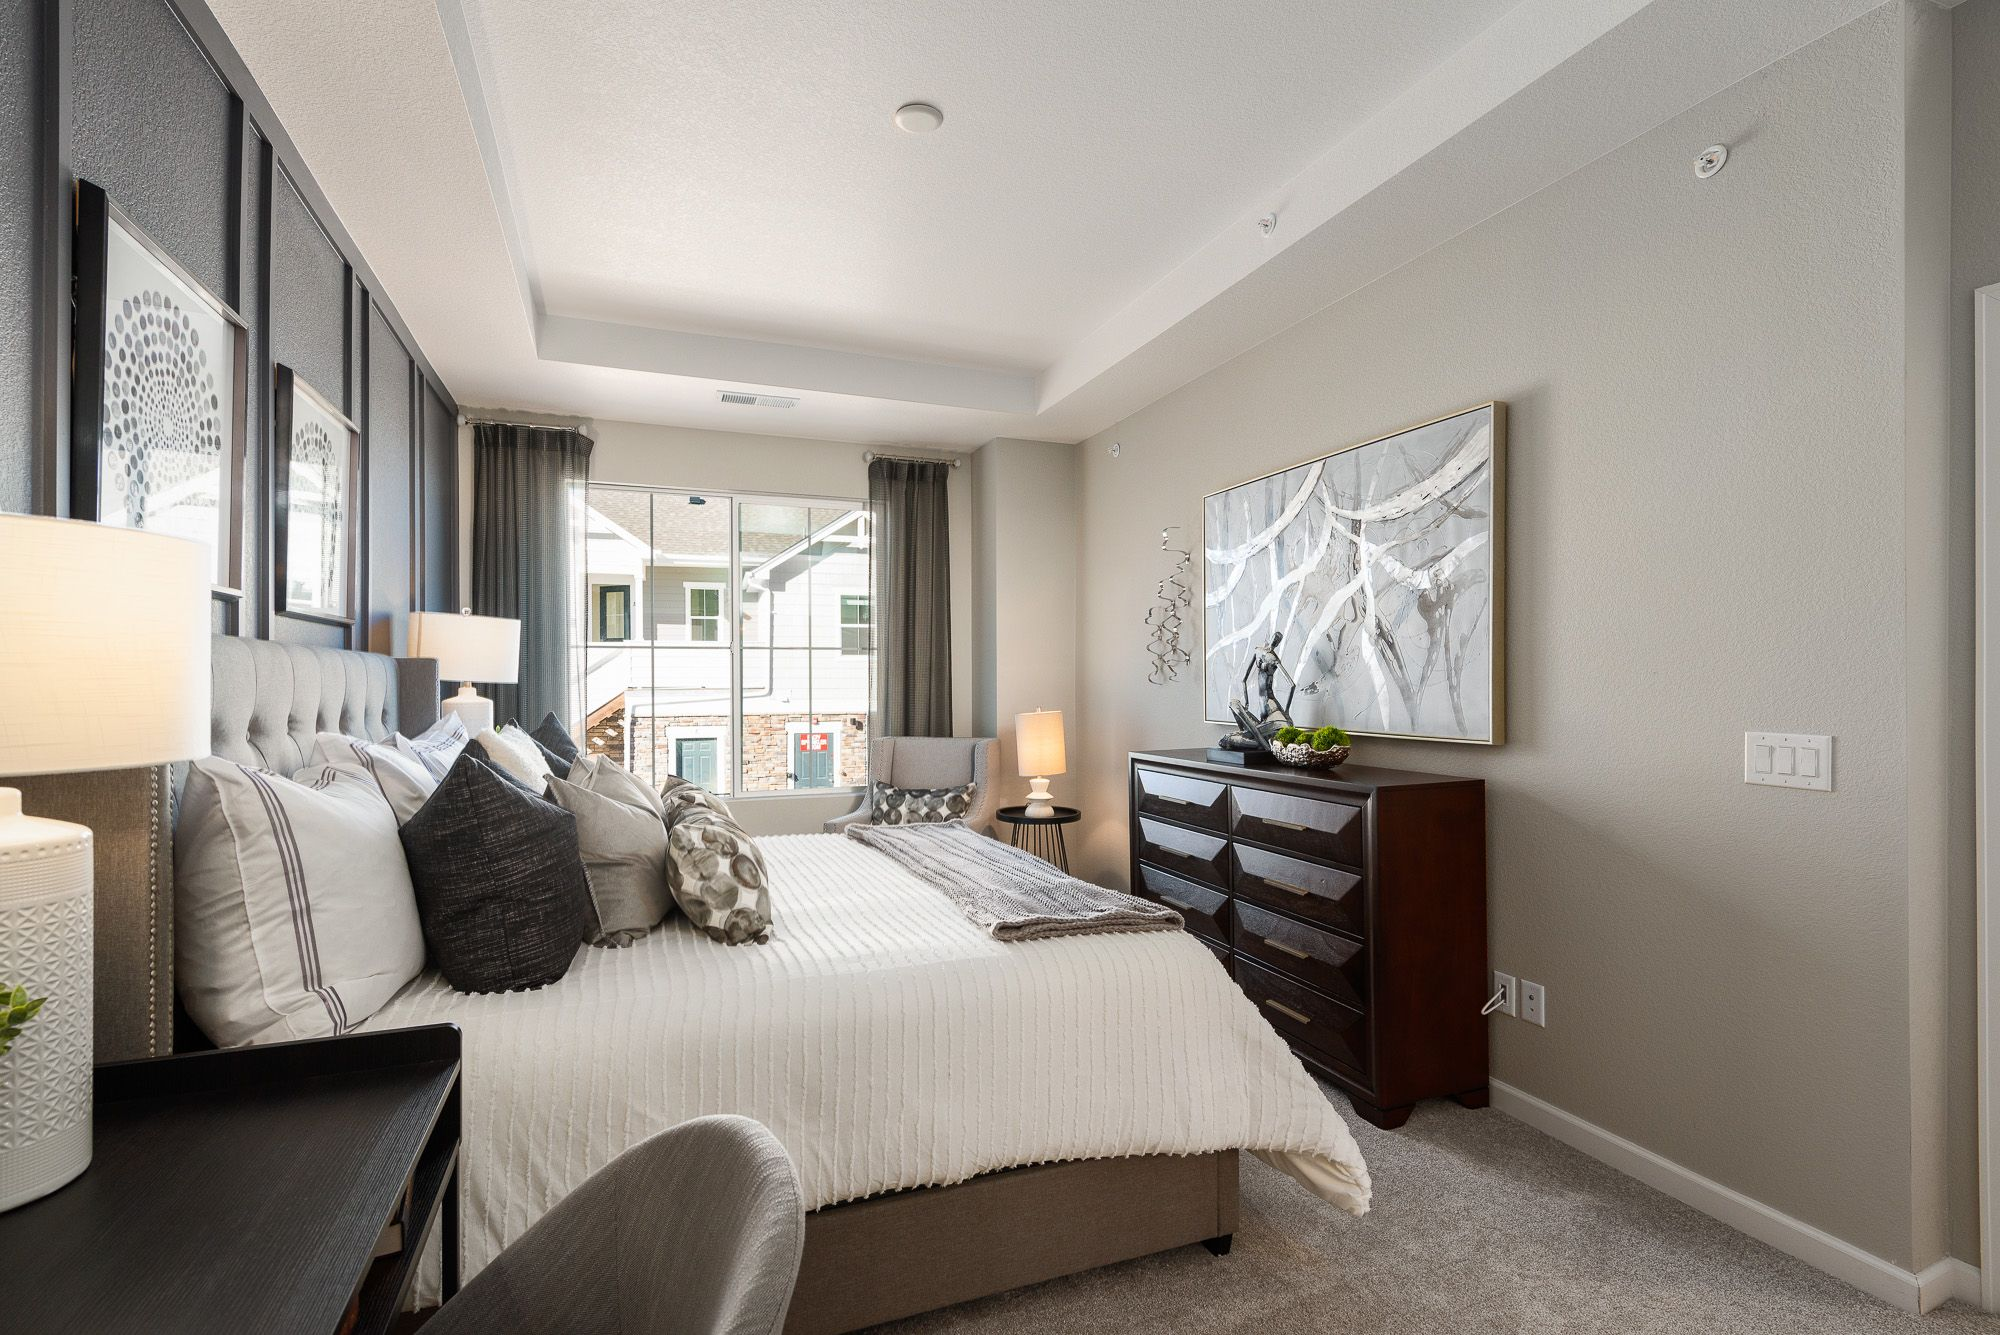 Bedroom featured in the Aiden By Lokal Homes in Denver, CO